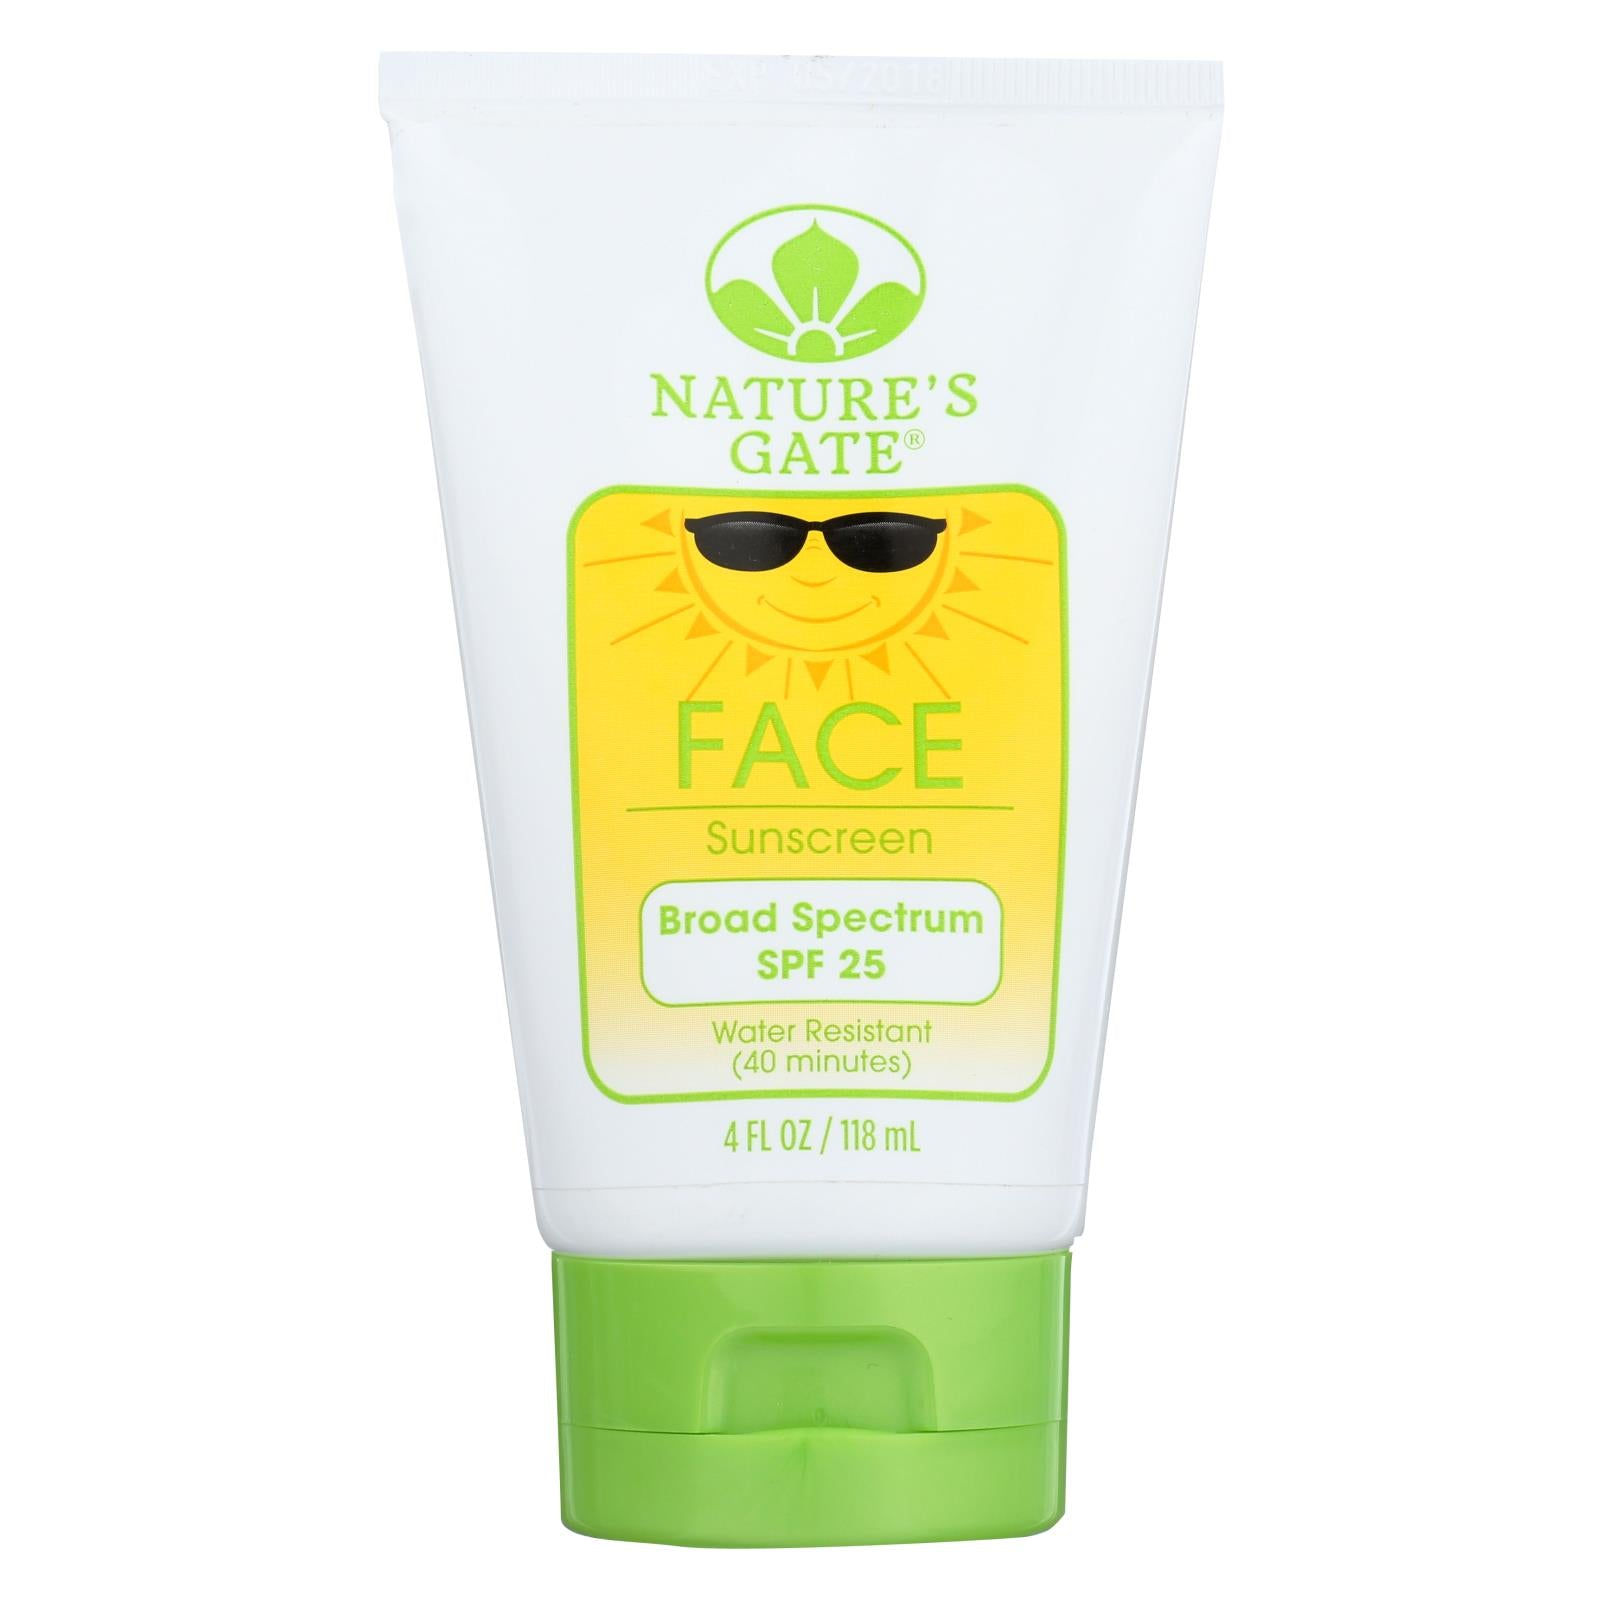 Buy Nature's Gate Faceblock Sunscreen - Fragrance Free Broad Spectrum SPF 25 - 4 fl oz - Sun Care from Veroeco.com